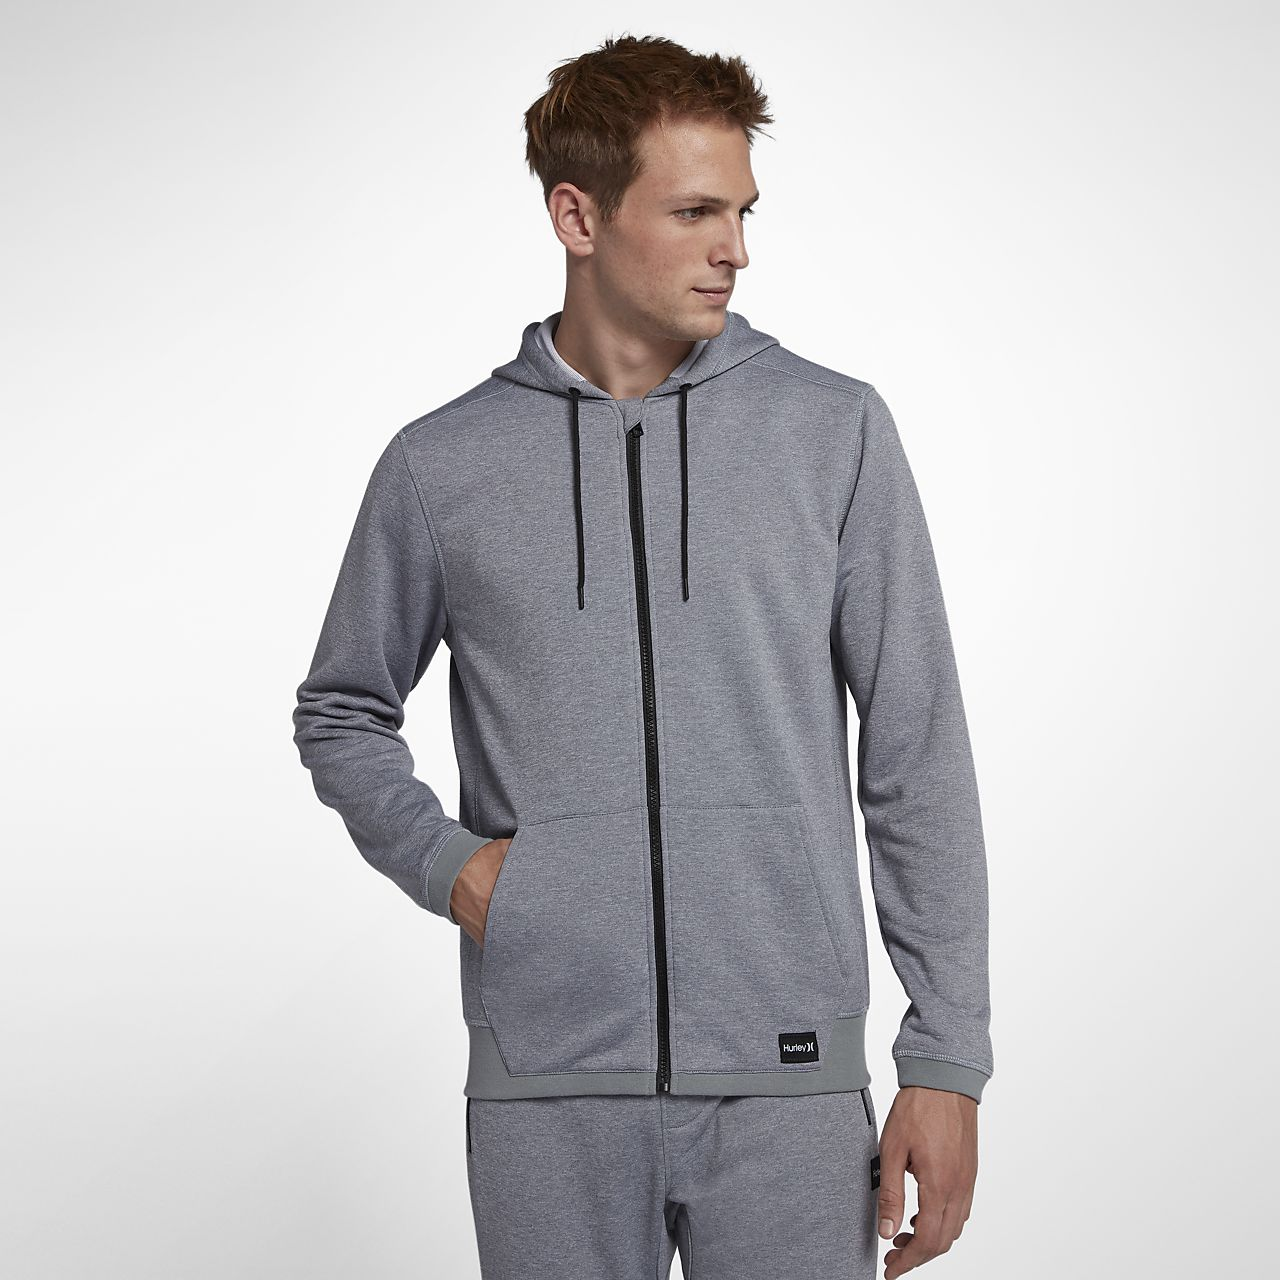 Hurley Dri-FIT Disperse Full-Zip Herren-Hoodie